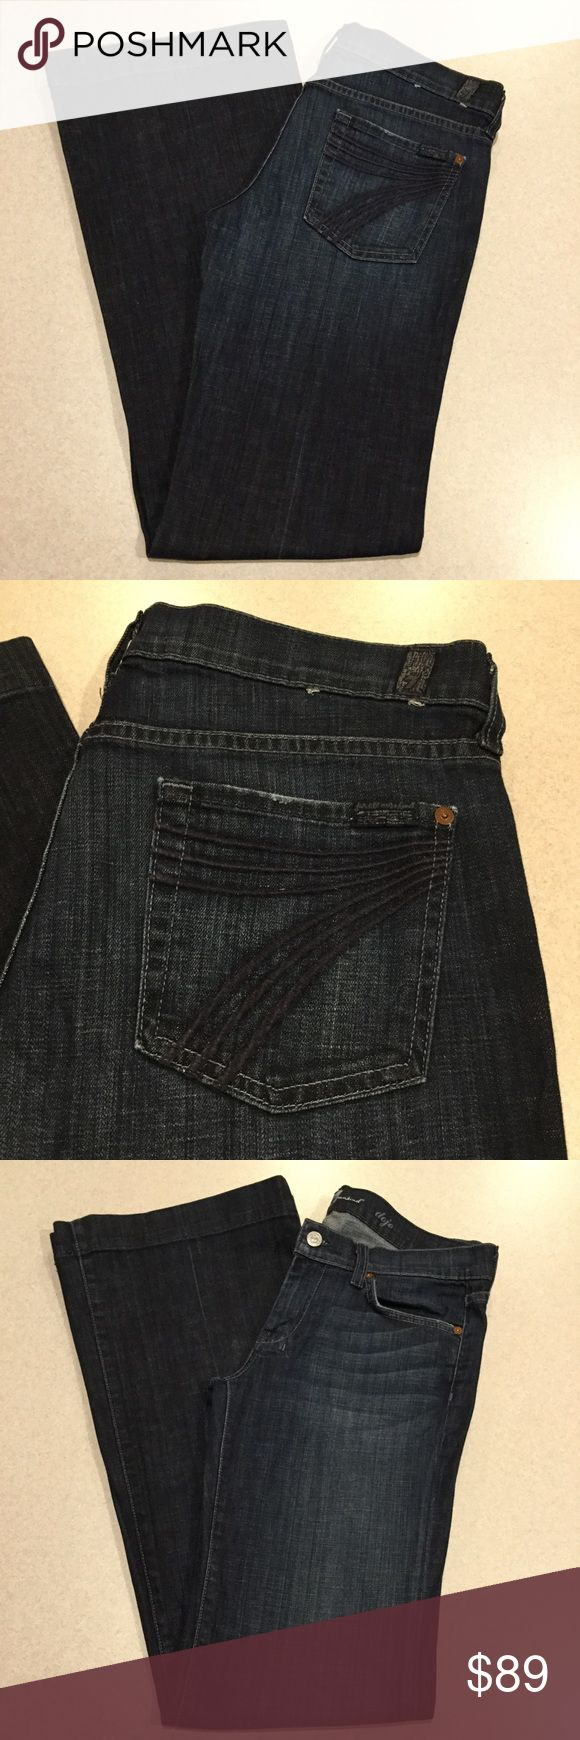 7 For All Mankind Jeans 30X35 Dojo New York Dark! ❗️PRICE ABSOLUTELY FIRM❗️ 7 for all mankind jeans Size 30 35 inch long unaltered inseam (hard to find!) The dojo in New York dark Famous blue stitched 7 back pockets Vibrant blue stretch denim with medium fading Perfect preowned condition, no flaws Retailed for $212.00 My dojos sell fast so don't wait on these!  All of my items come from a smoke free, pet free home and are authenticity guaranteed! Please ask any questions. 307-8 7 For All…